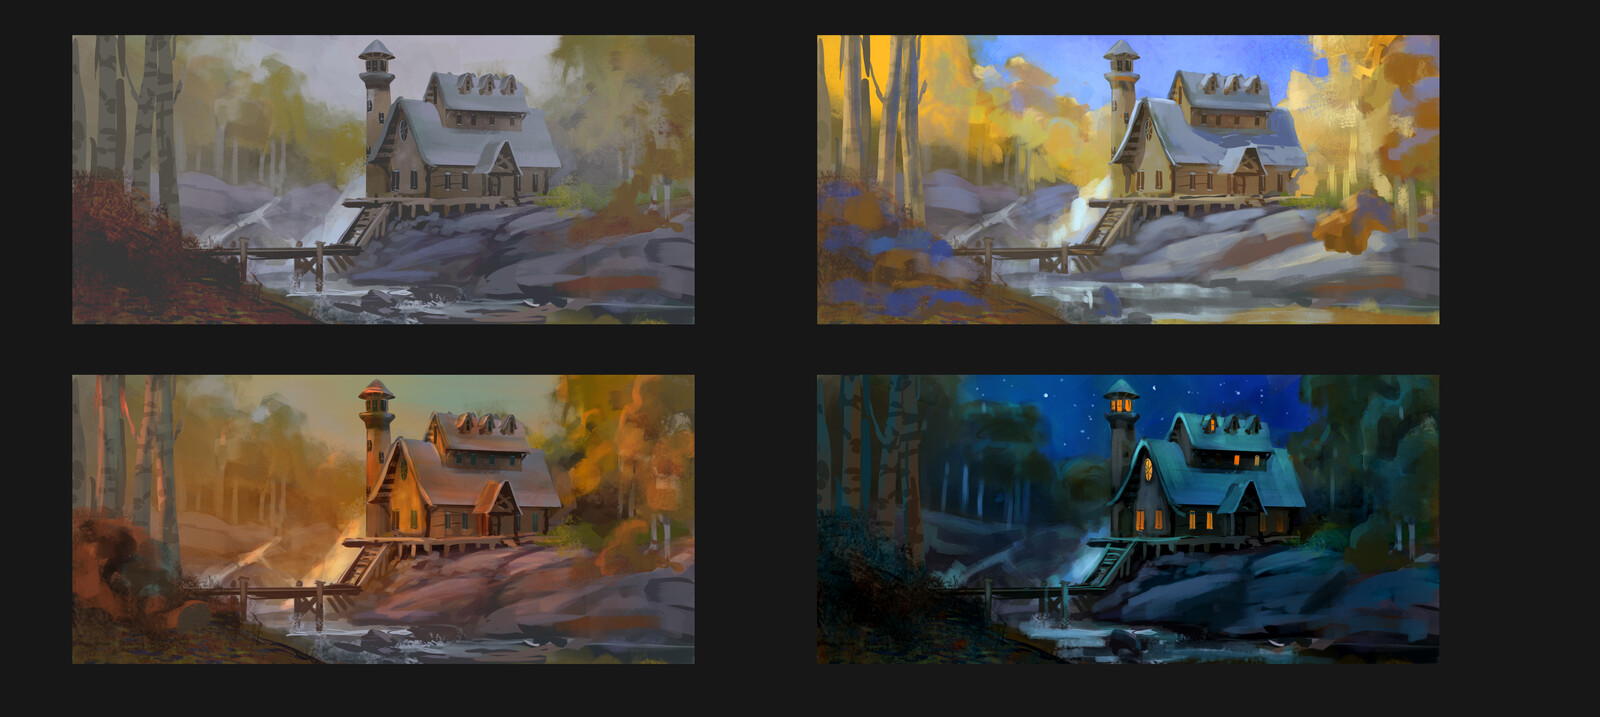 Time of Day Paintings